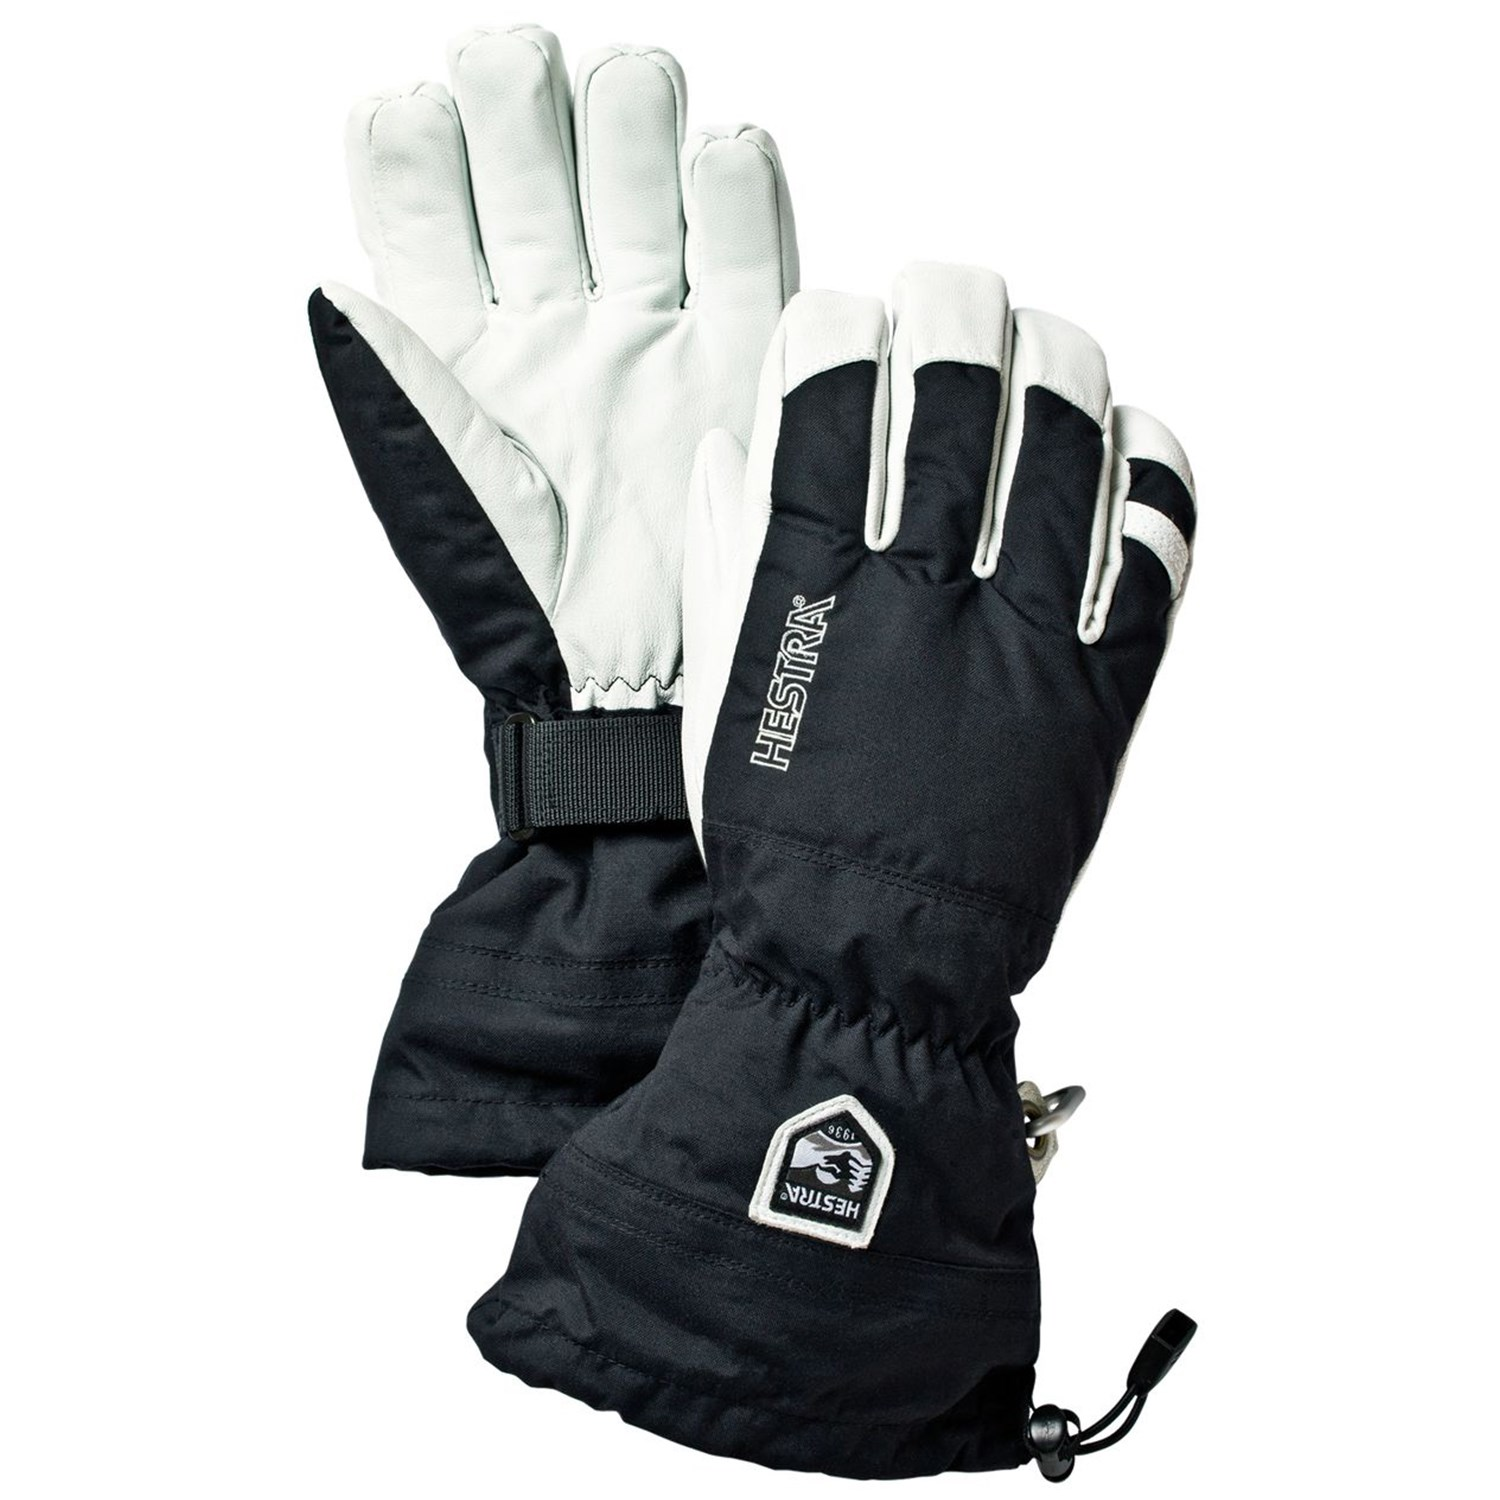 Hestra mens gloves - Hestra Mens Gloves 34